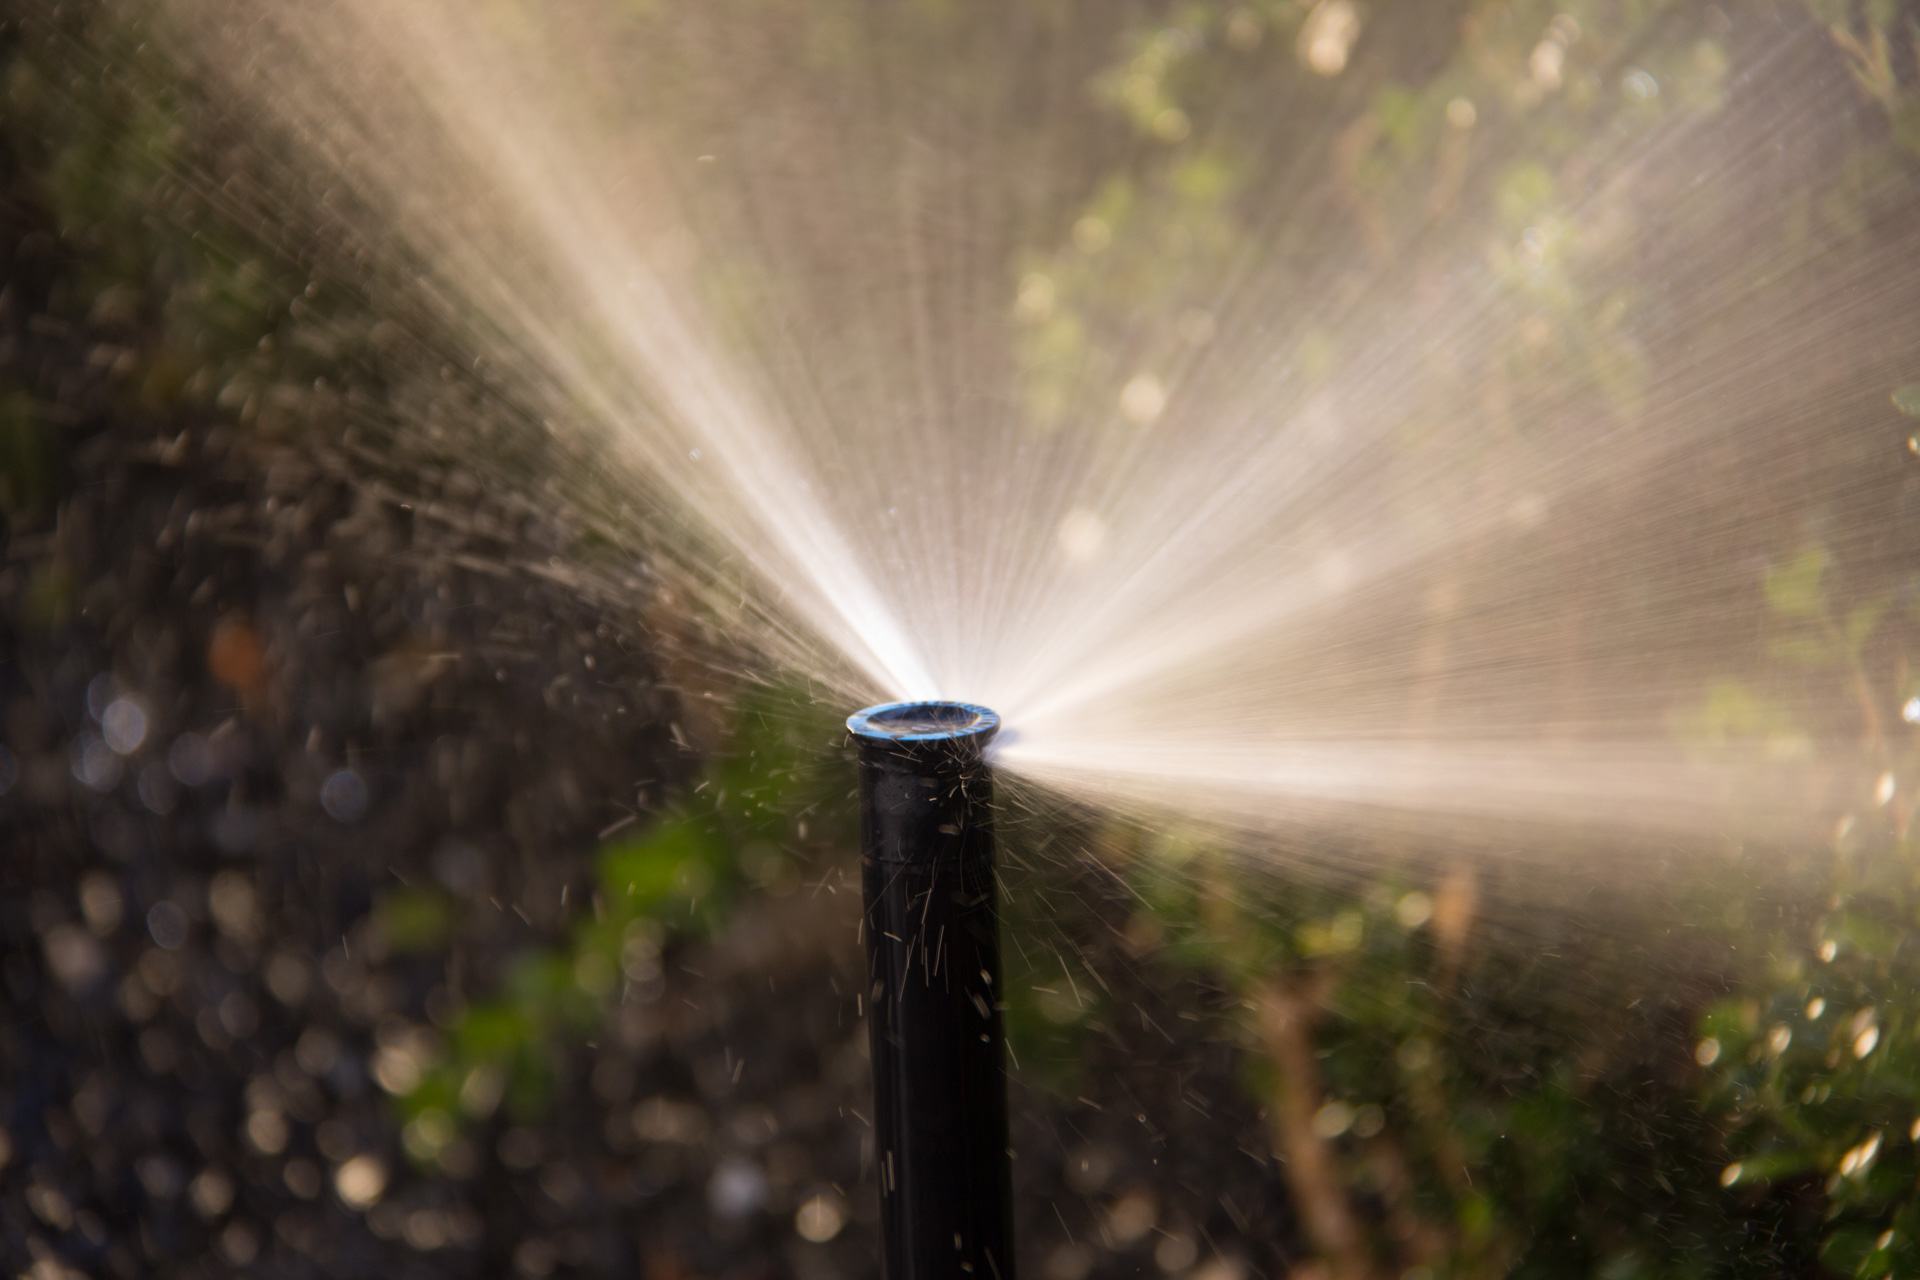 Fort Worth Lawn Sprinkler Photography